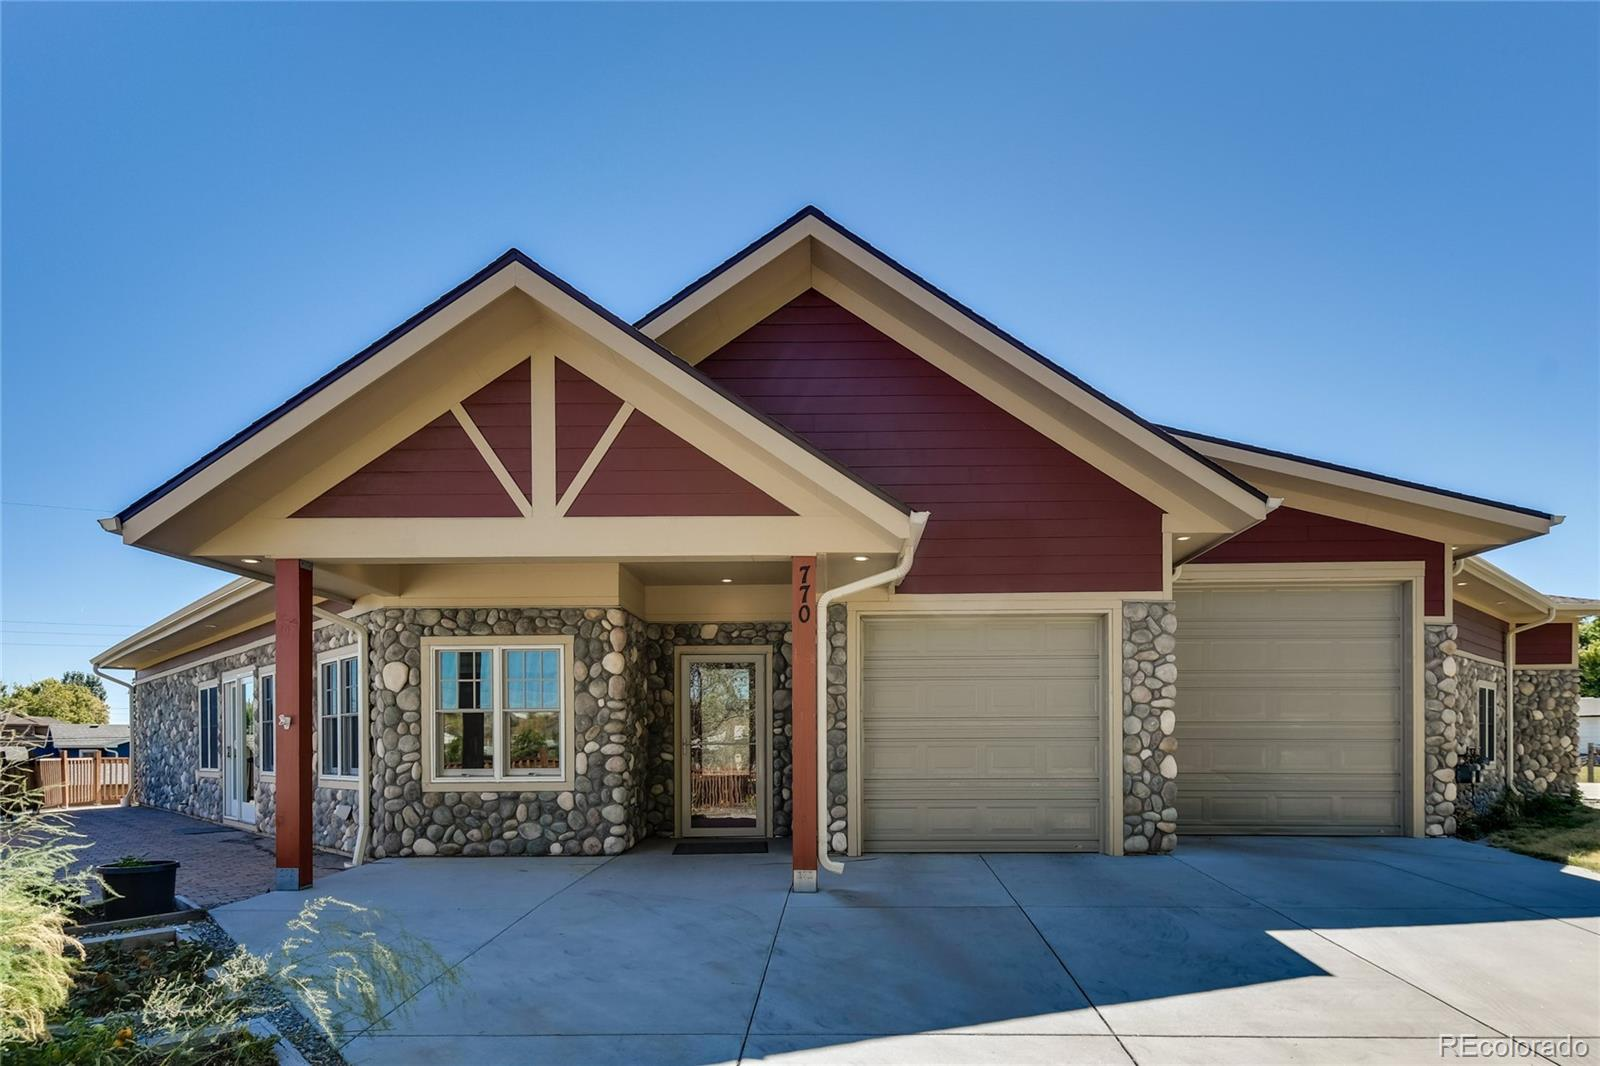 OPEN HOUSE SUNDAY 9/26/2021 1:00-4:00 Rustic/Modern ranch style home. No stairs! 24 Solar panels on roof that are owned. Open floor plan with hardwood floors. 11 foot ceilings. Modern chef's kitchen with floor to ceiling cabinets, large island (with storage) gas stove top, double ovens, prep sink, Quartz counter tops, 3 pantries, stainless steel appliances and light grey cabinets. Living room has a wood burning rock fireplace. Great entertaining home with living room, walk out onto the deck from the sliding glass door and big dining space. Master suite-large walk in closet and master bathroom, has a shower (a small step up) and modern double sinks. Bedrooms 2 and 3 have a full bathroom in between. 4th bedroom up front could also make a great home office. Nice entry with curved wall for art work. Laundry room with a soaking sink, full size washer and dryer. Hunter Douglas blinds on all windows. wrap around decking on the side to the back. Large yard and garden areas. This half duplex is joined by the 3 car garage on both sides. No adjoining walls. 11ft ceilings in the garage with built in mechanics cabinet, 220 Volt plug for an electric car, lots of storage space. Bring your RV and park it outside and use the RV drainage system out front. Large 80 gallon hot water tank, Ecobee Smart Thermostat. Central A/C. This is on a cul-de-sac. Easy access to 6th Ave and I70.